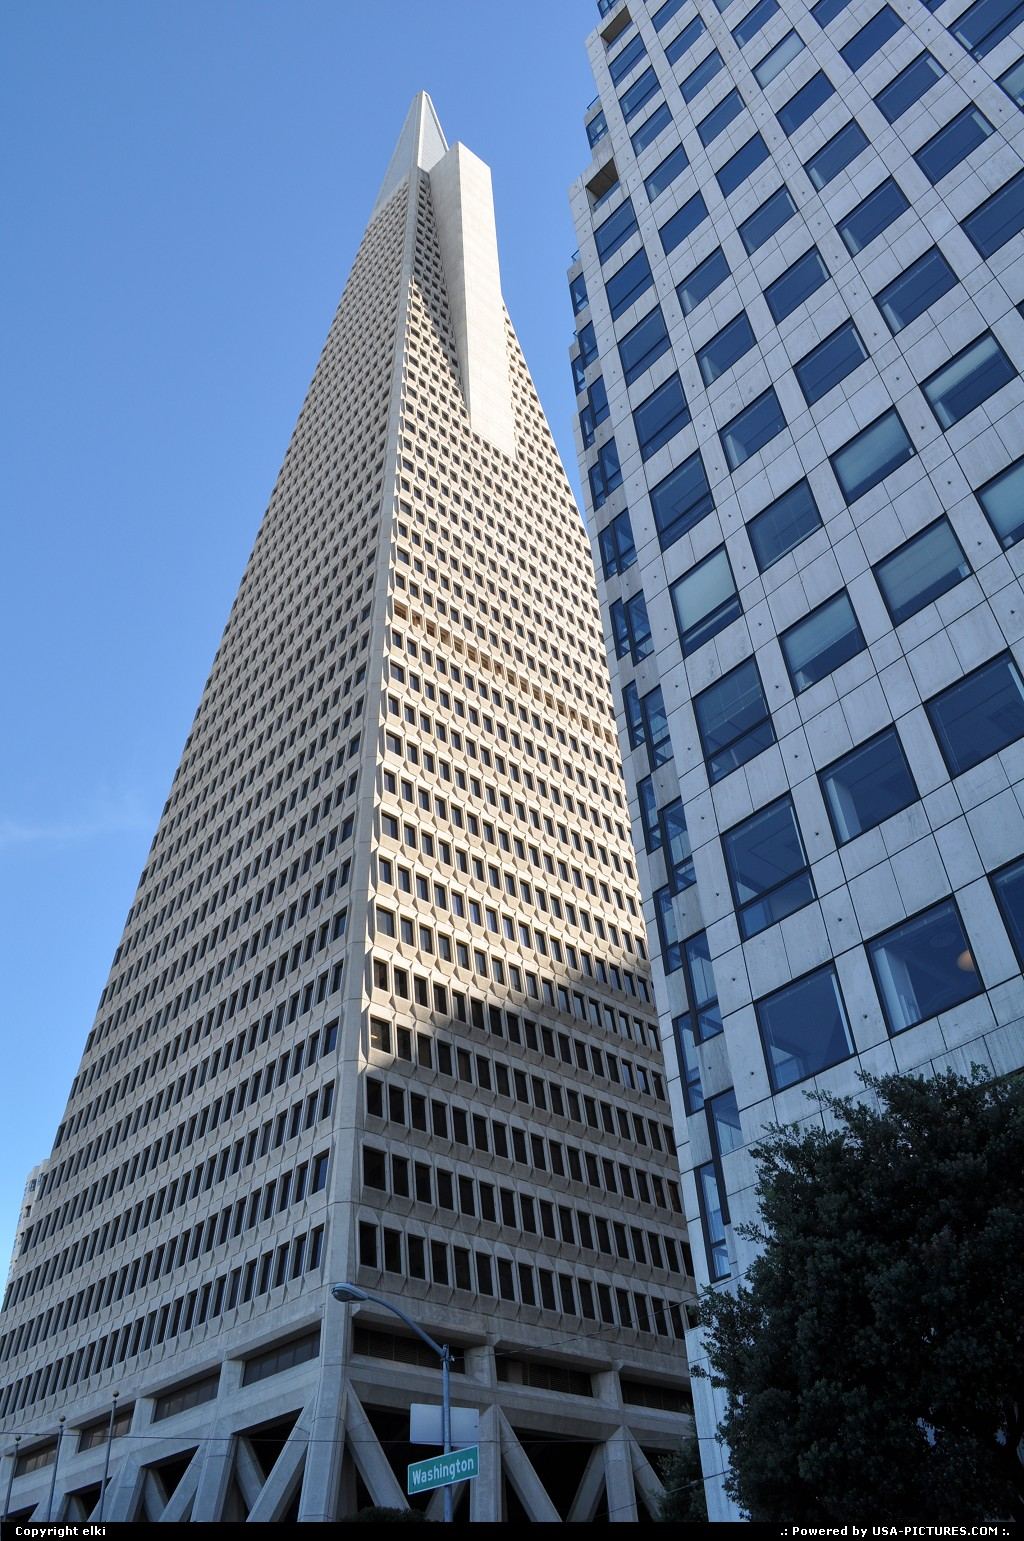 Picture by elki: San Francisco California   san francisco, transamerica pyramid